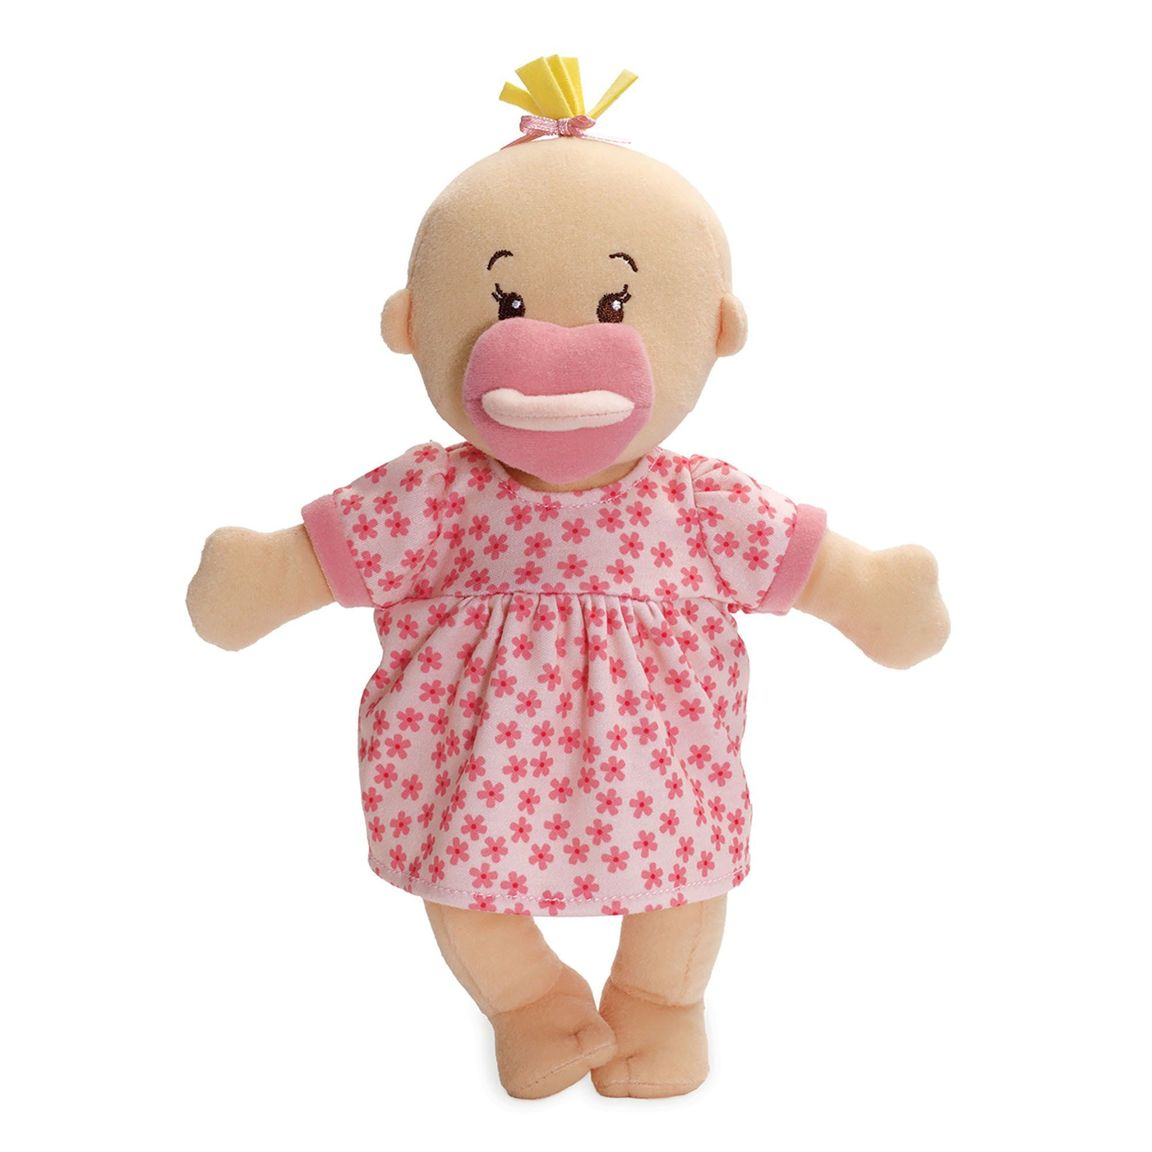 Manhattan Toy | Wee Baby Stella Doll Peach, Soft Plush Baby Doll